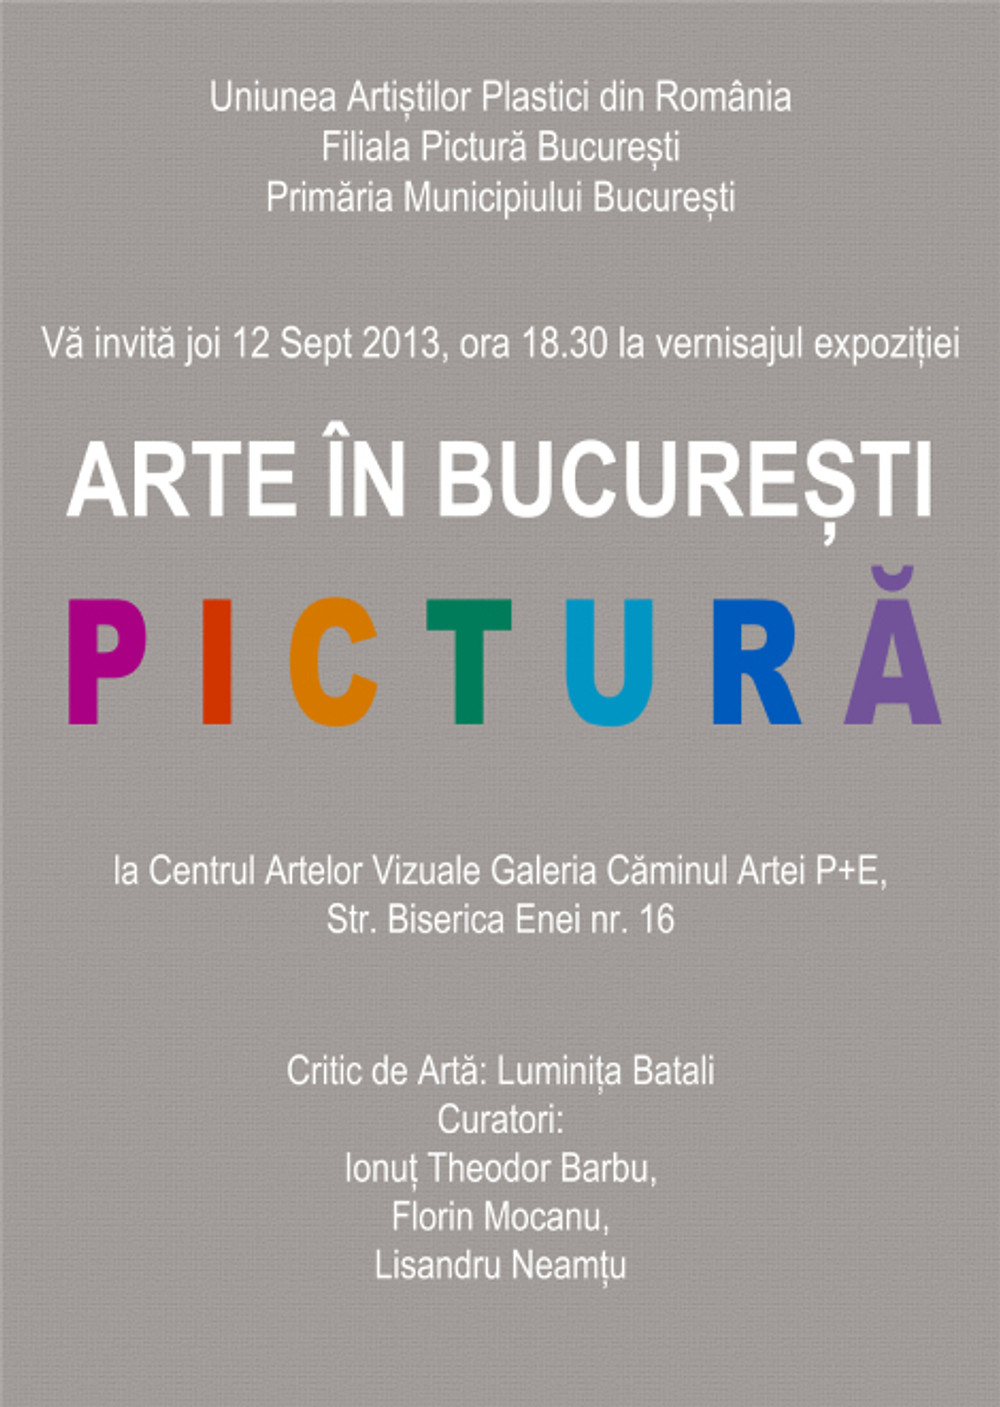 invitatie ARTE BUCURESTI 2013 low res